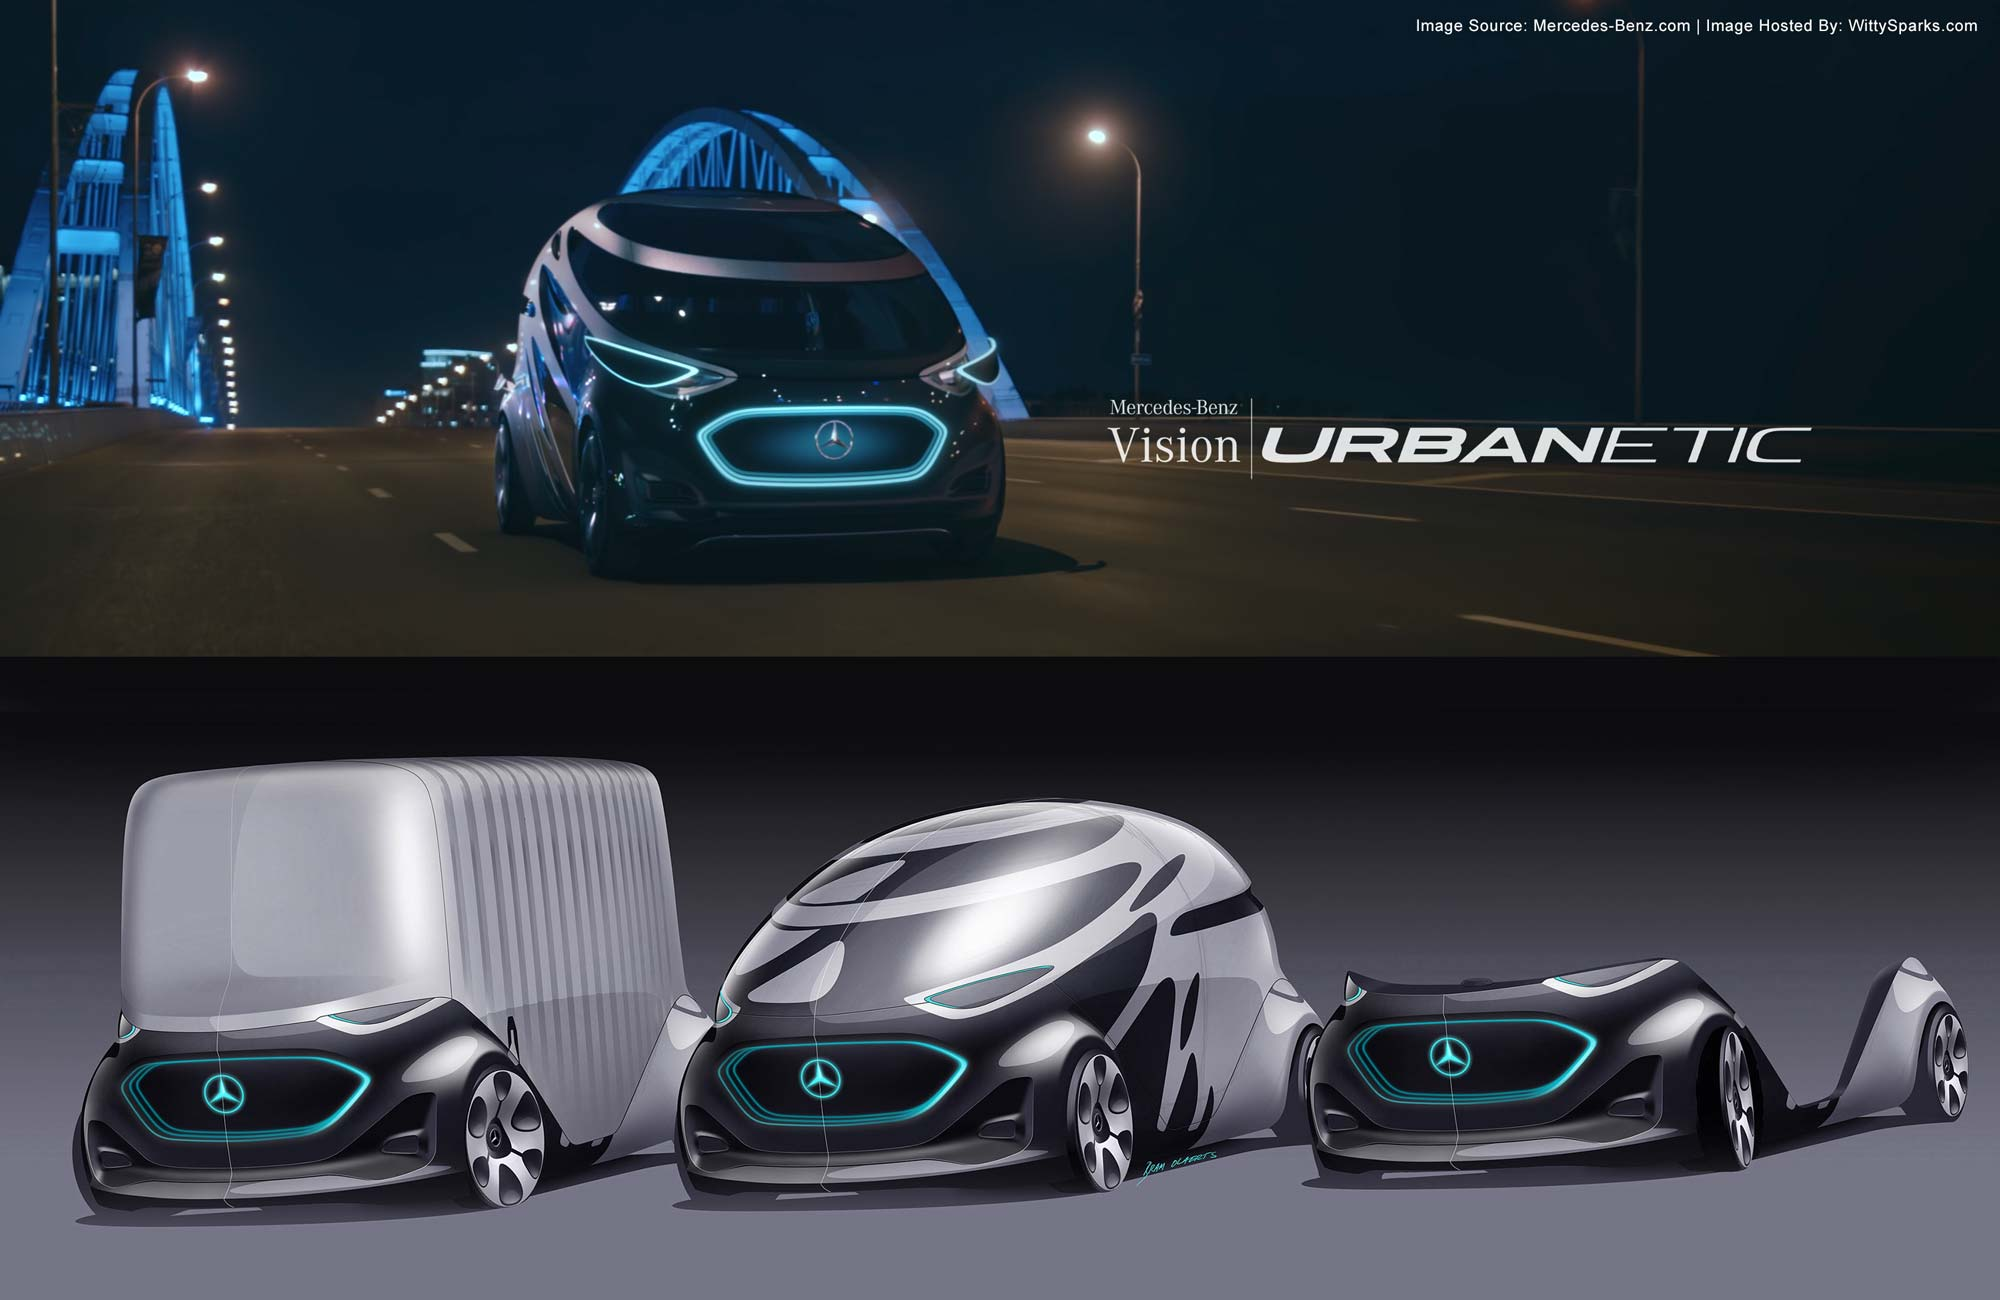 Mercedes-Benz - Vision Urbanetic - The mobility of the future.